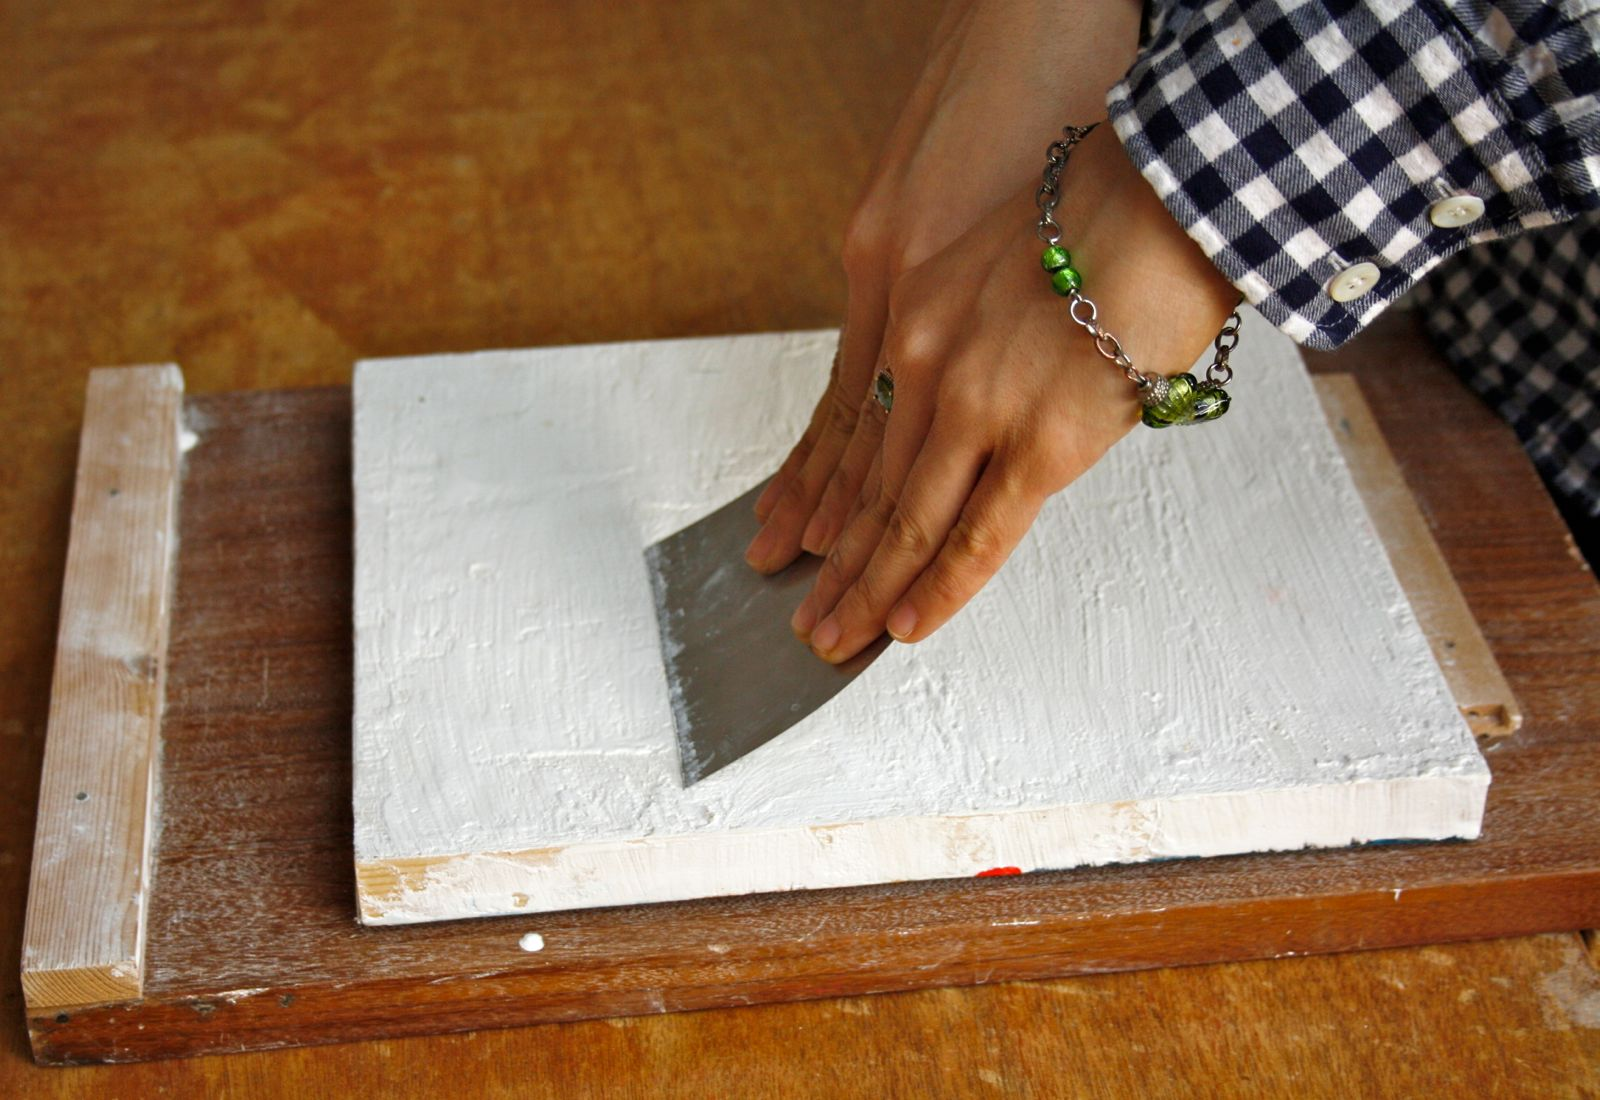 Scraping the gesso smooth using a metal scraper